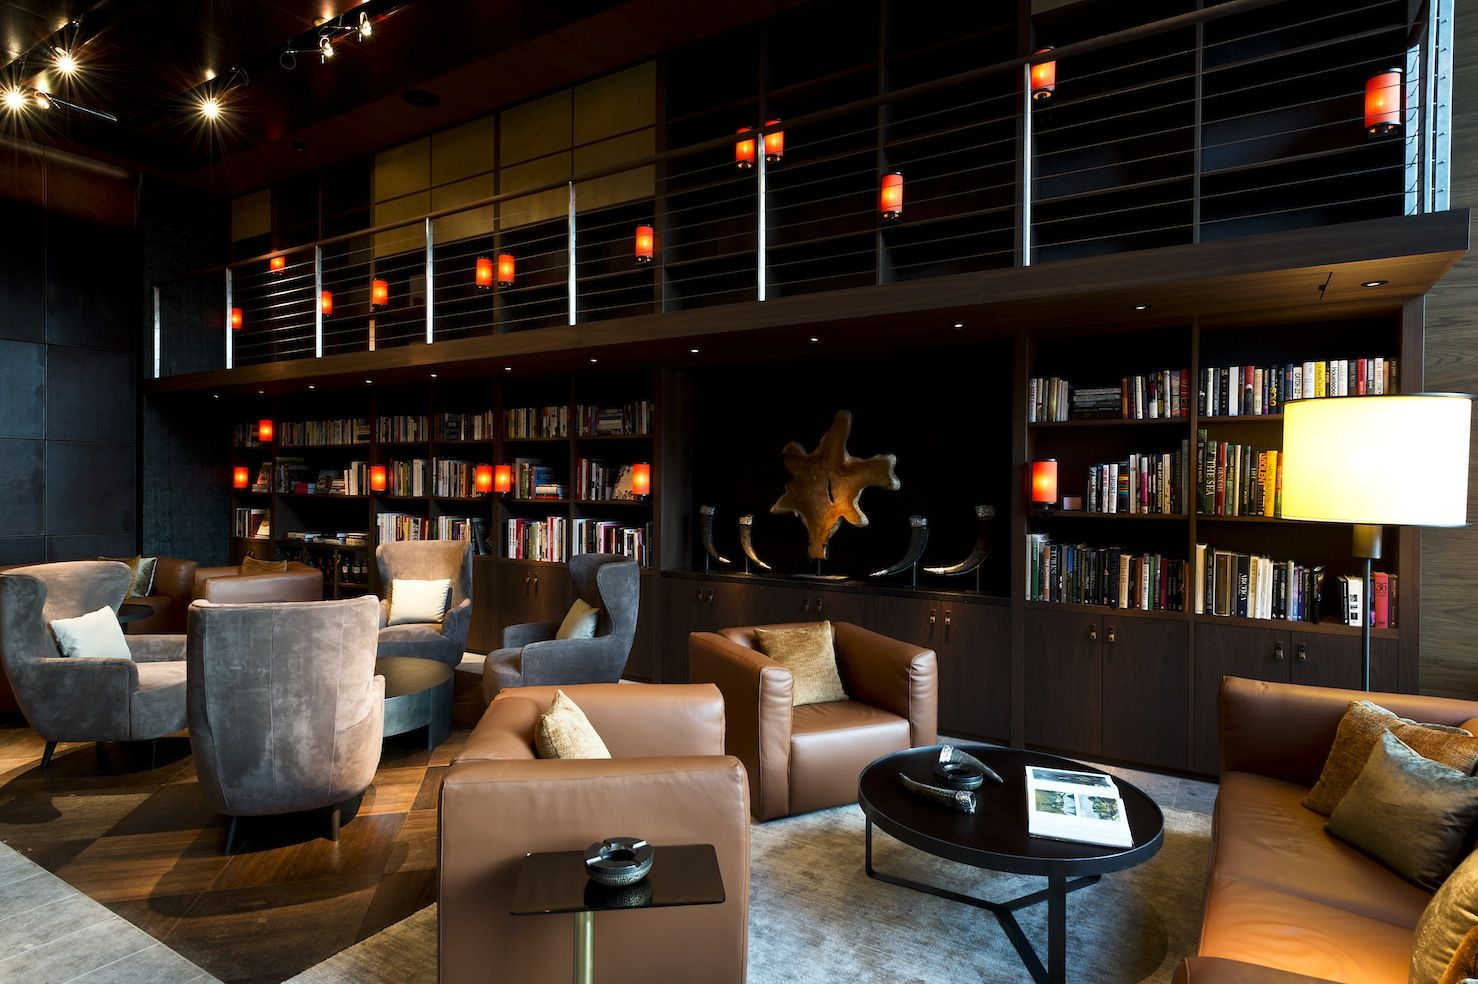 Wohnzimmer Cafe Bar The Wine And Cigar Library At The Chedi Andermatt Swiss